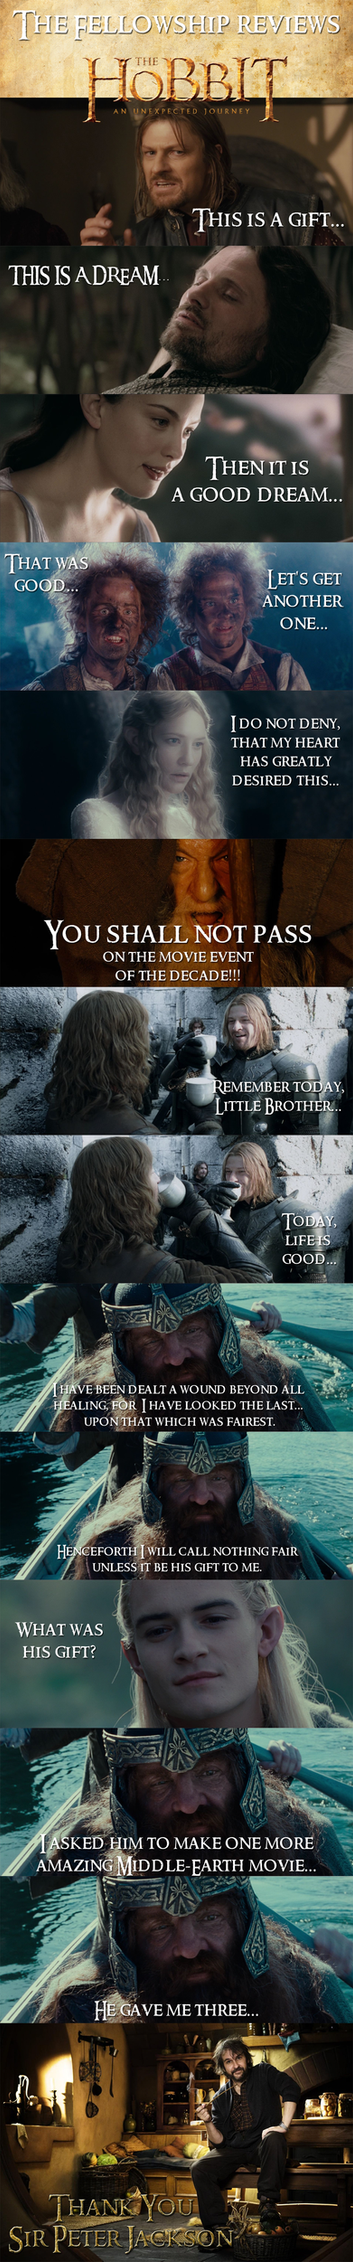 LOTR - The Fellowship Reviews The Hobbit by yourparodies